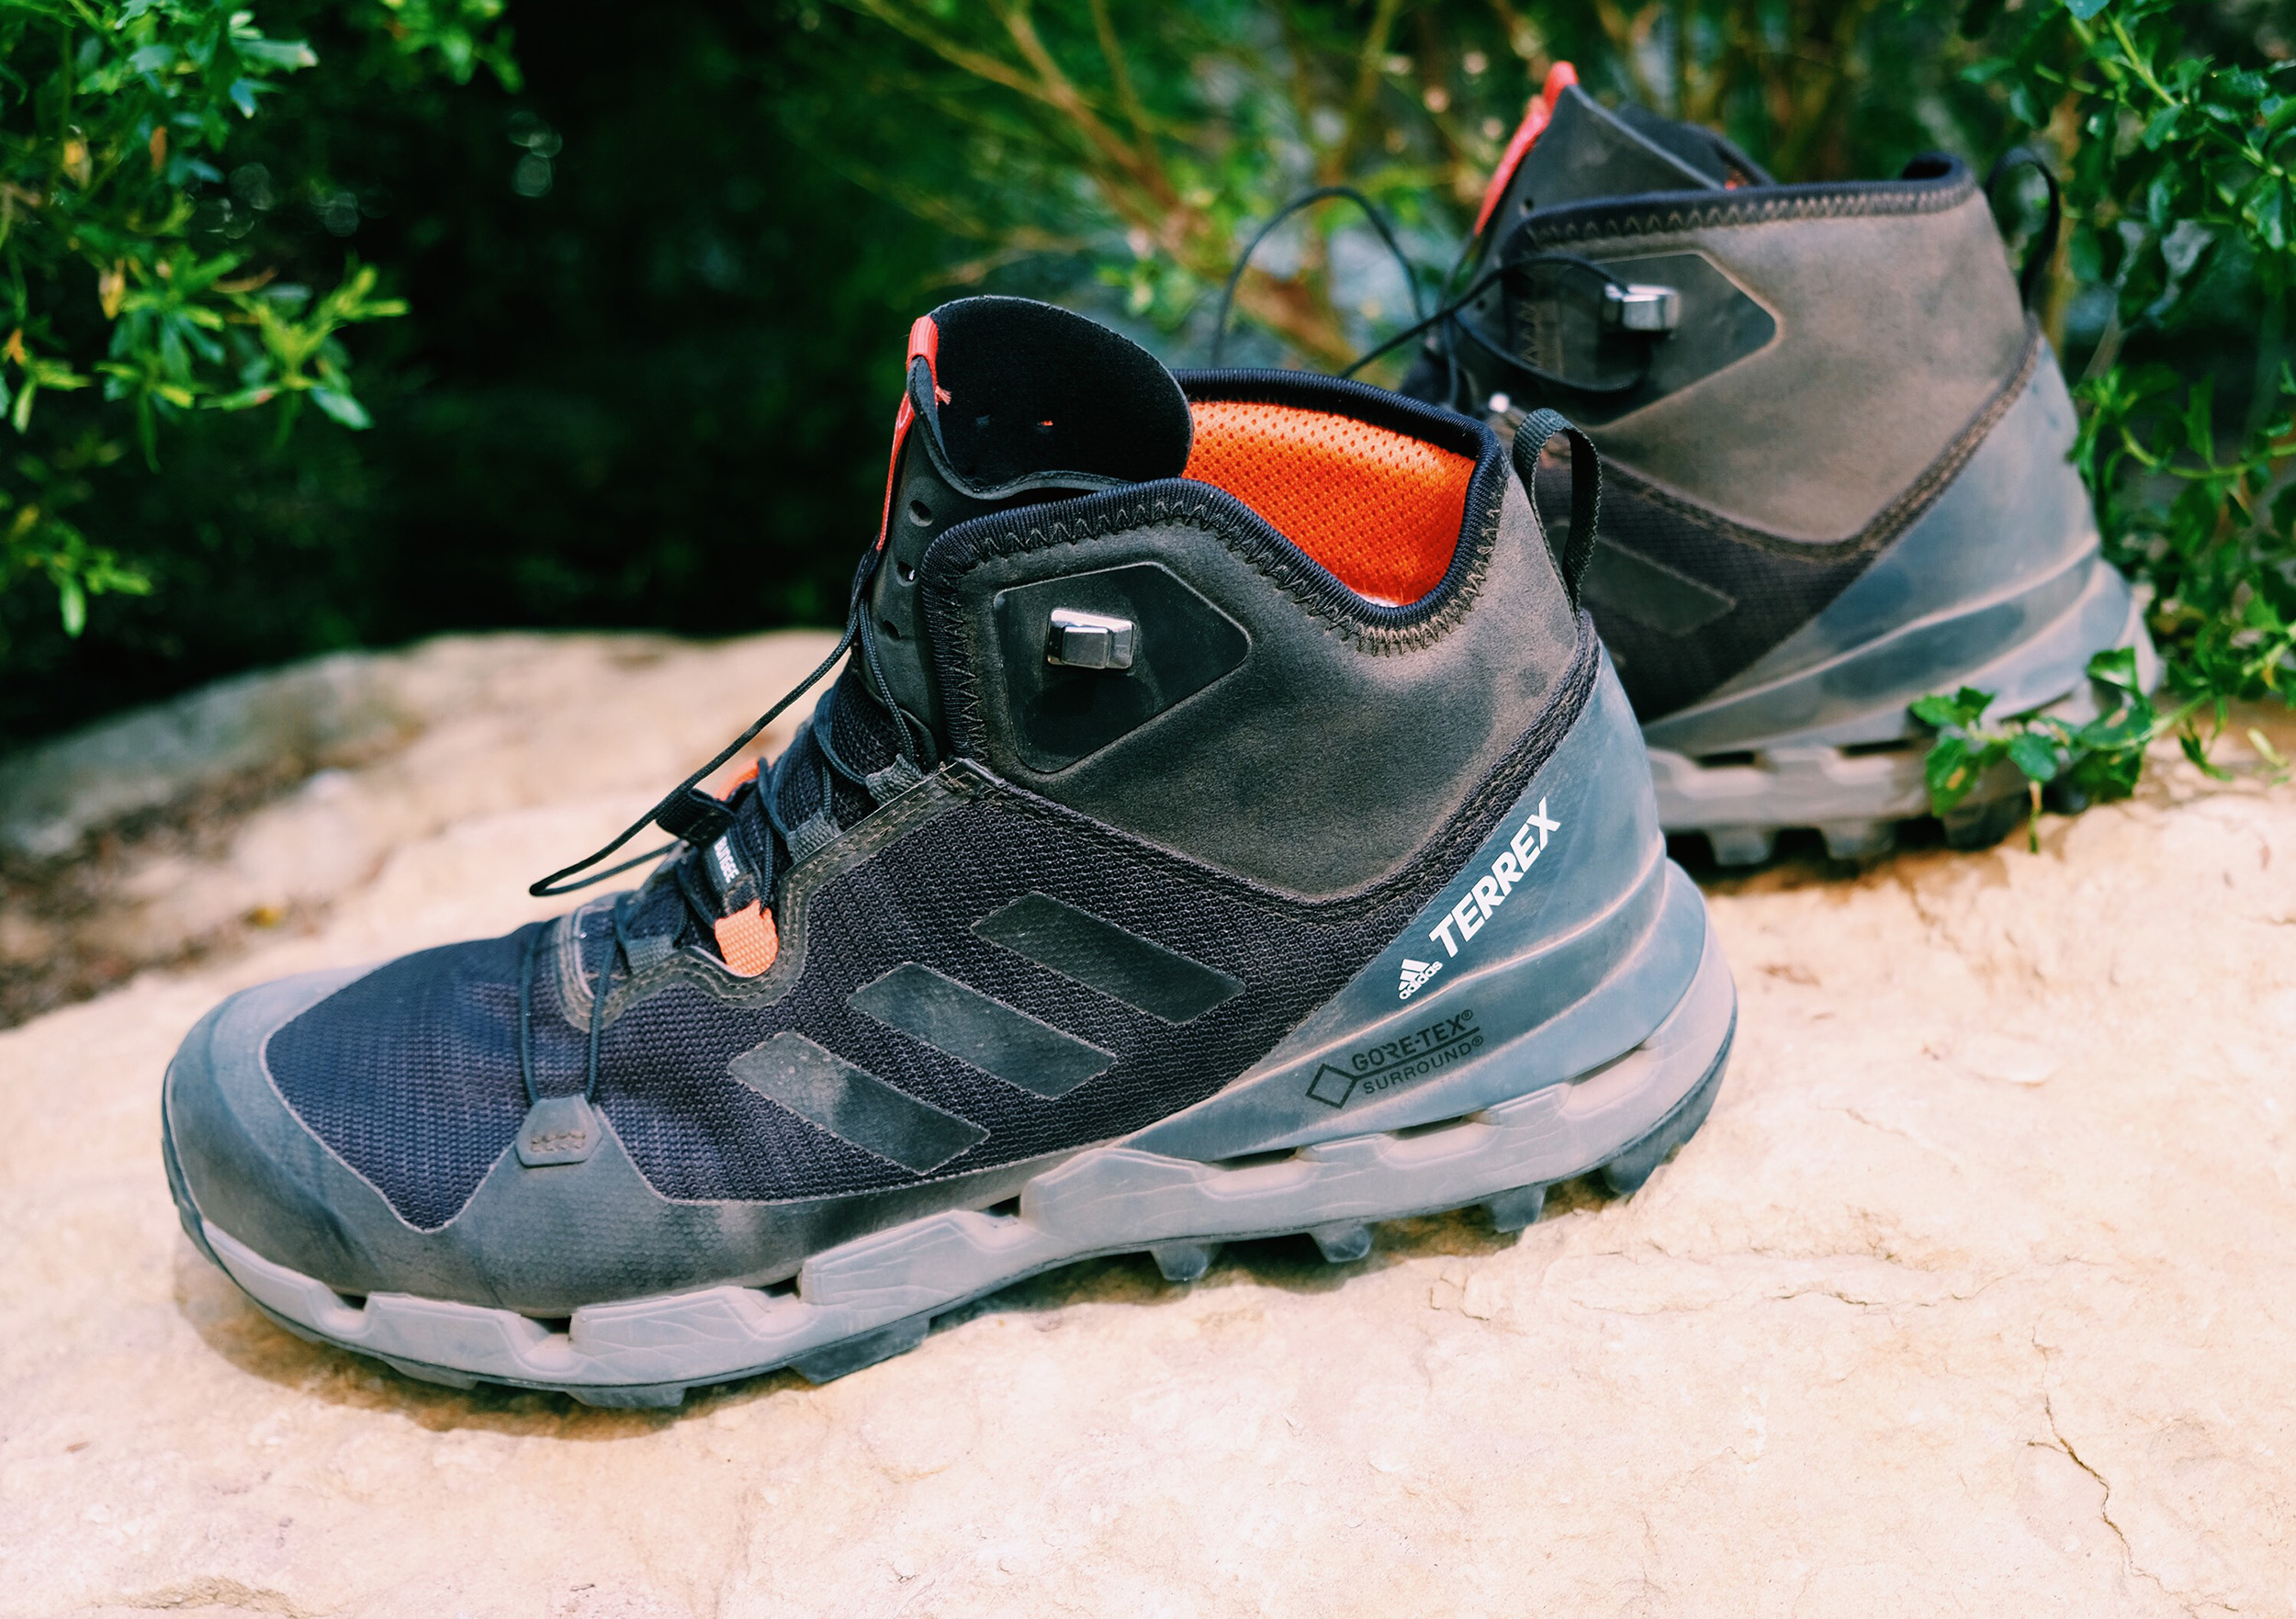 special for shoe sneakers for cheap unique design Versatile Gear For Spring and Summer Travel | Gearminded